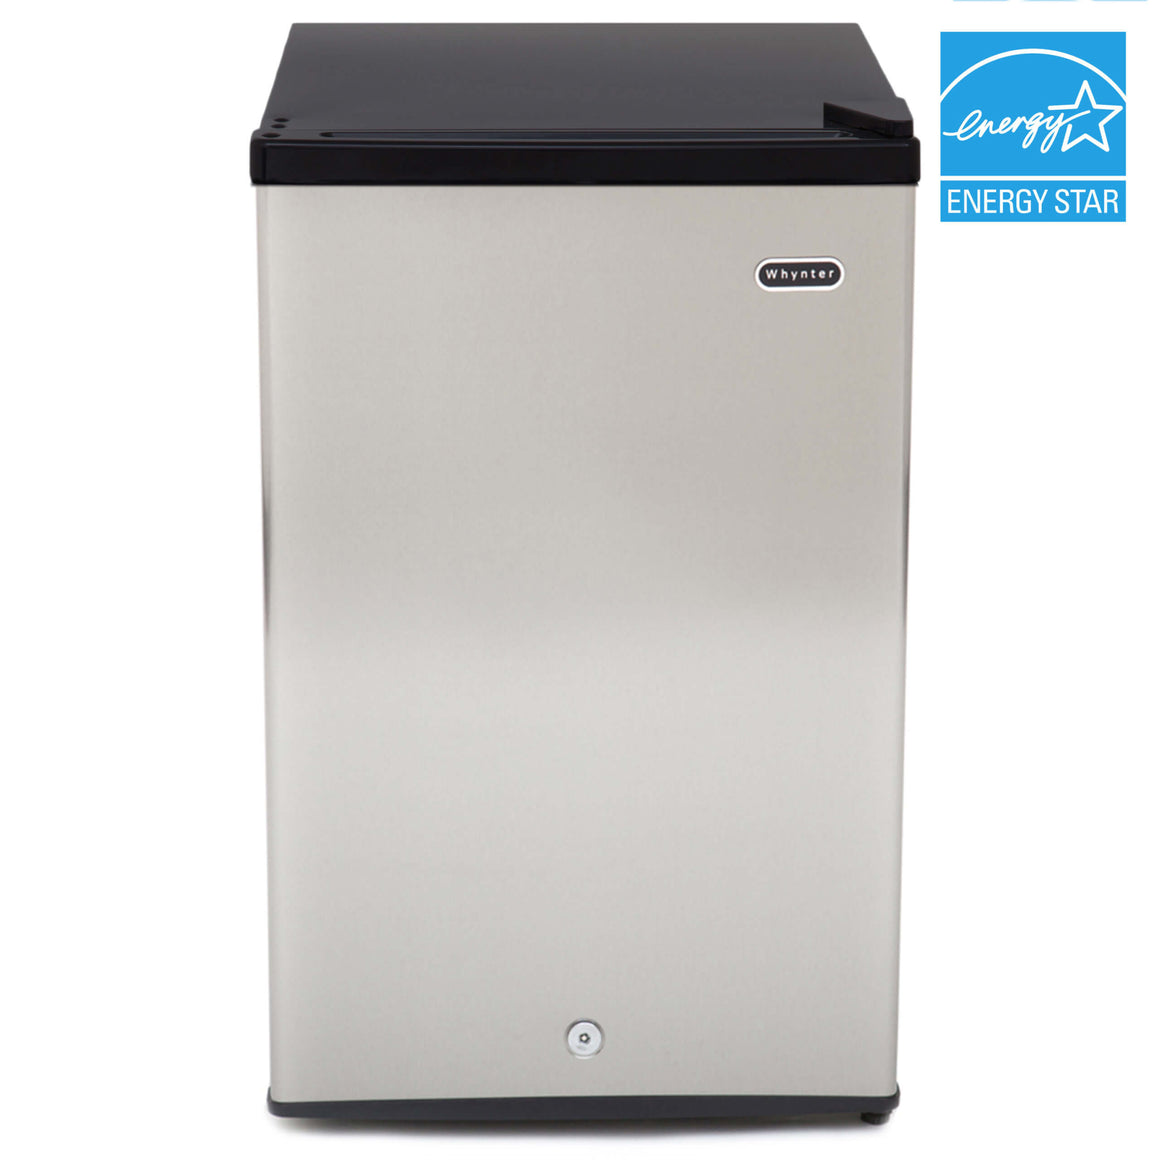 Whynter 3.0 cu. ft. Energy Star Upright Freezer with Lock – Stainless Steel - CUF-301SS